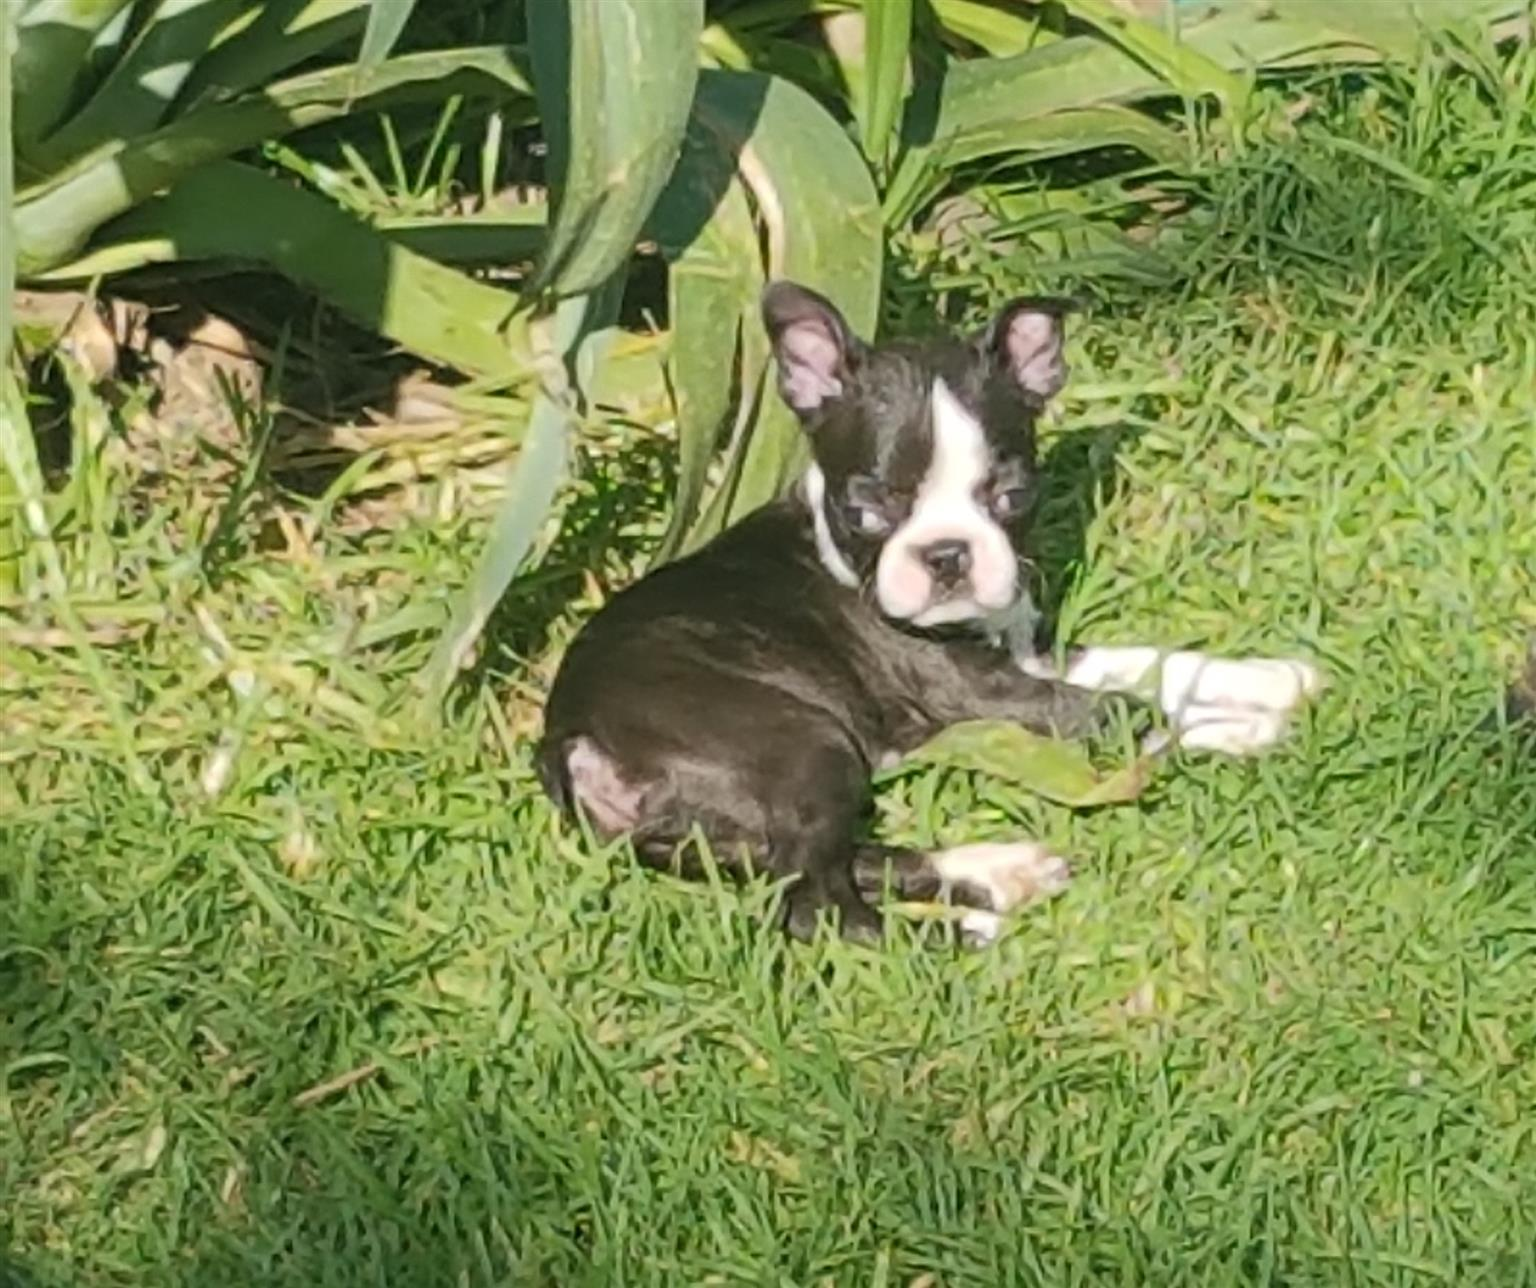 Adorable Pure bred Boston Terrier puppies for sale